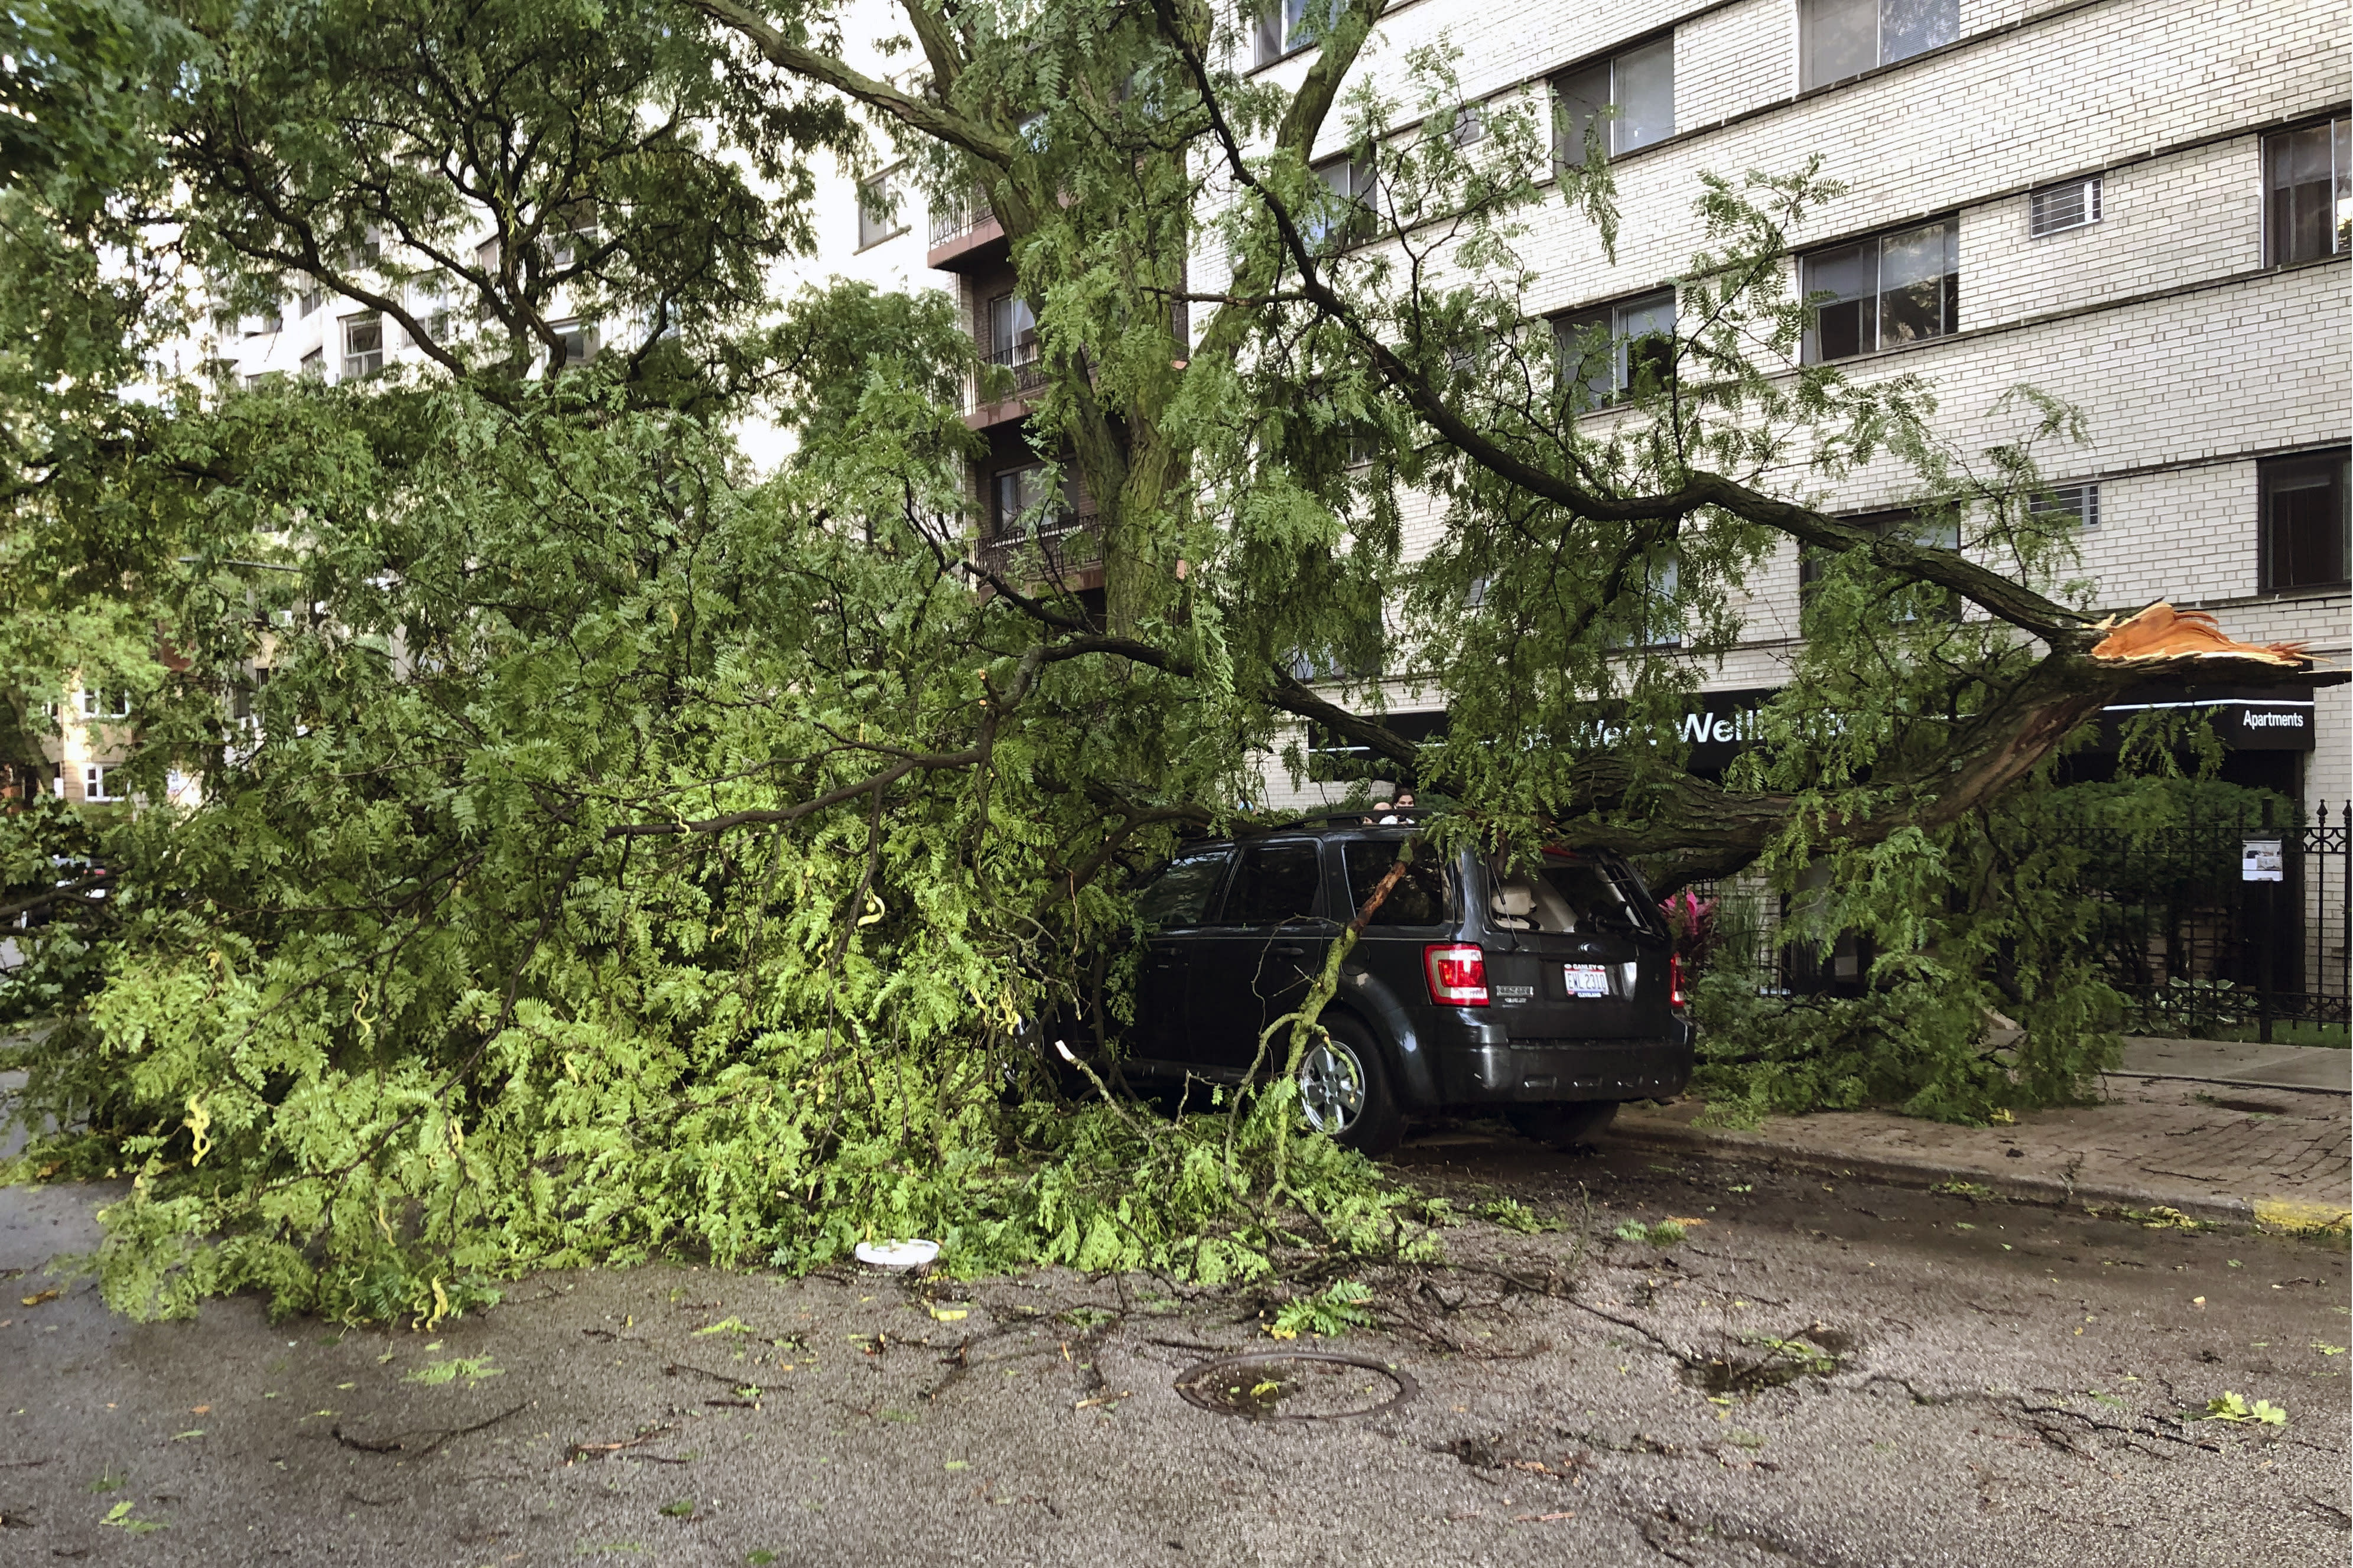 Derecho storm leaves path of destruction in Midwest